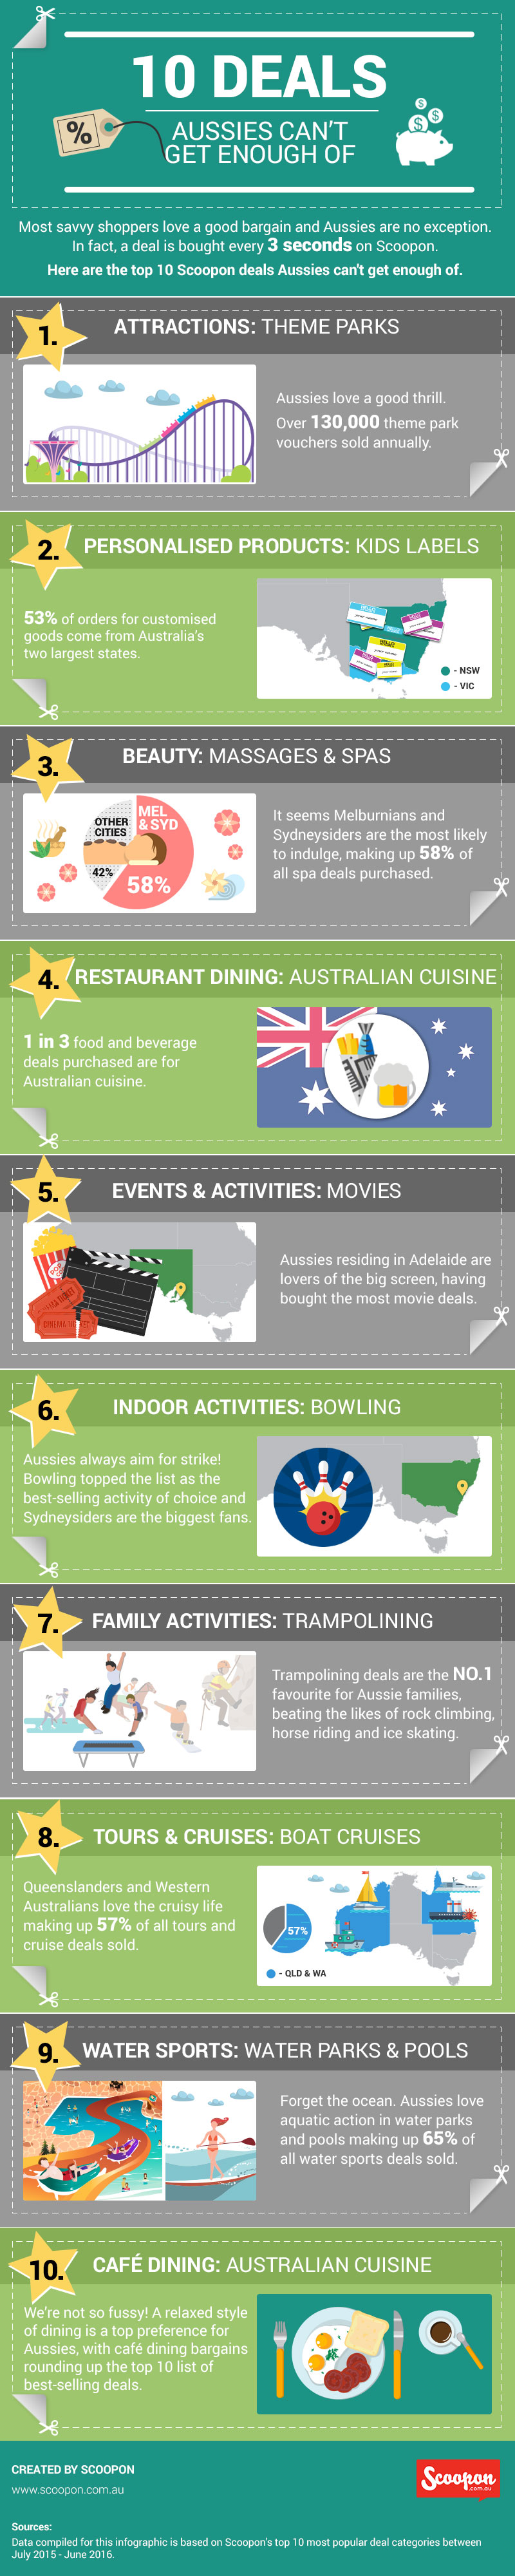 scoopon_10-deals-aussies-cant-get-enough-of_infographic_final-approved-1